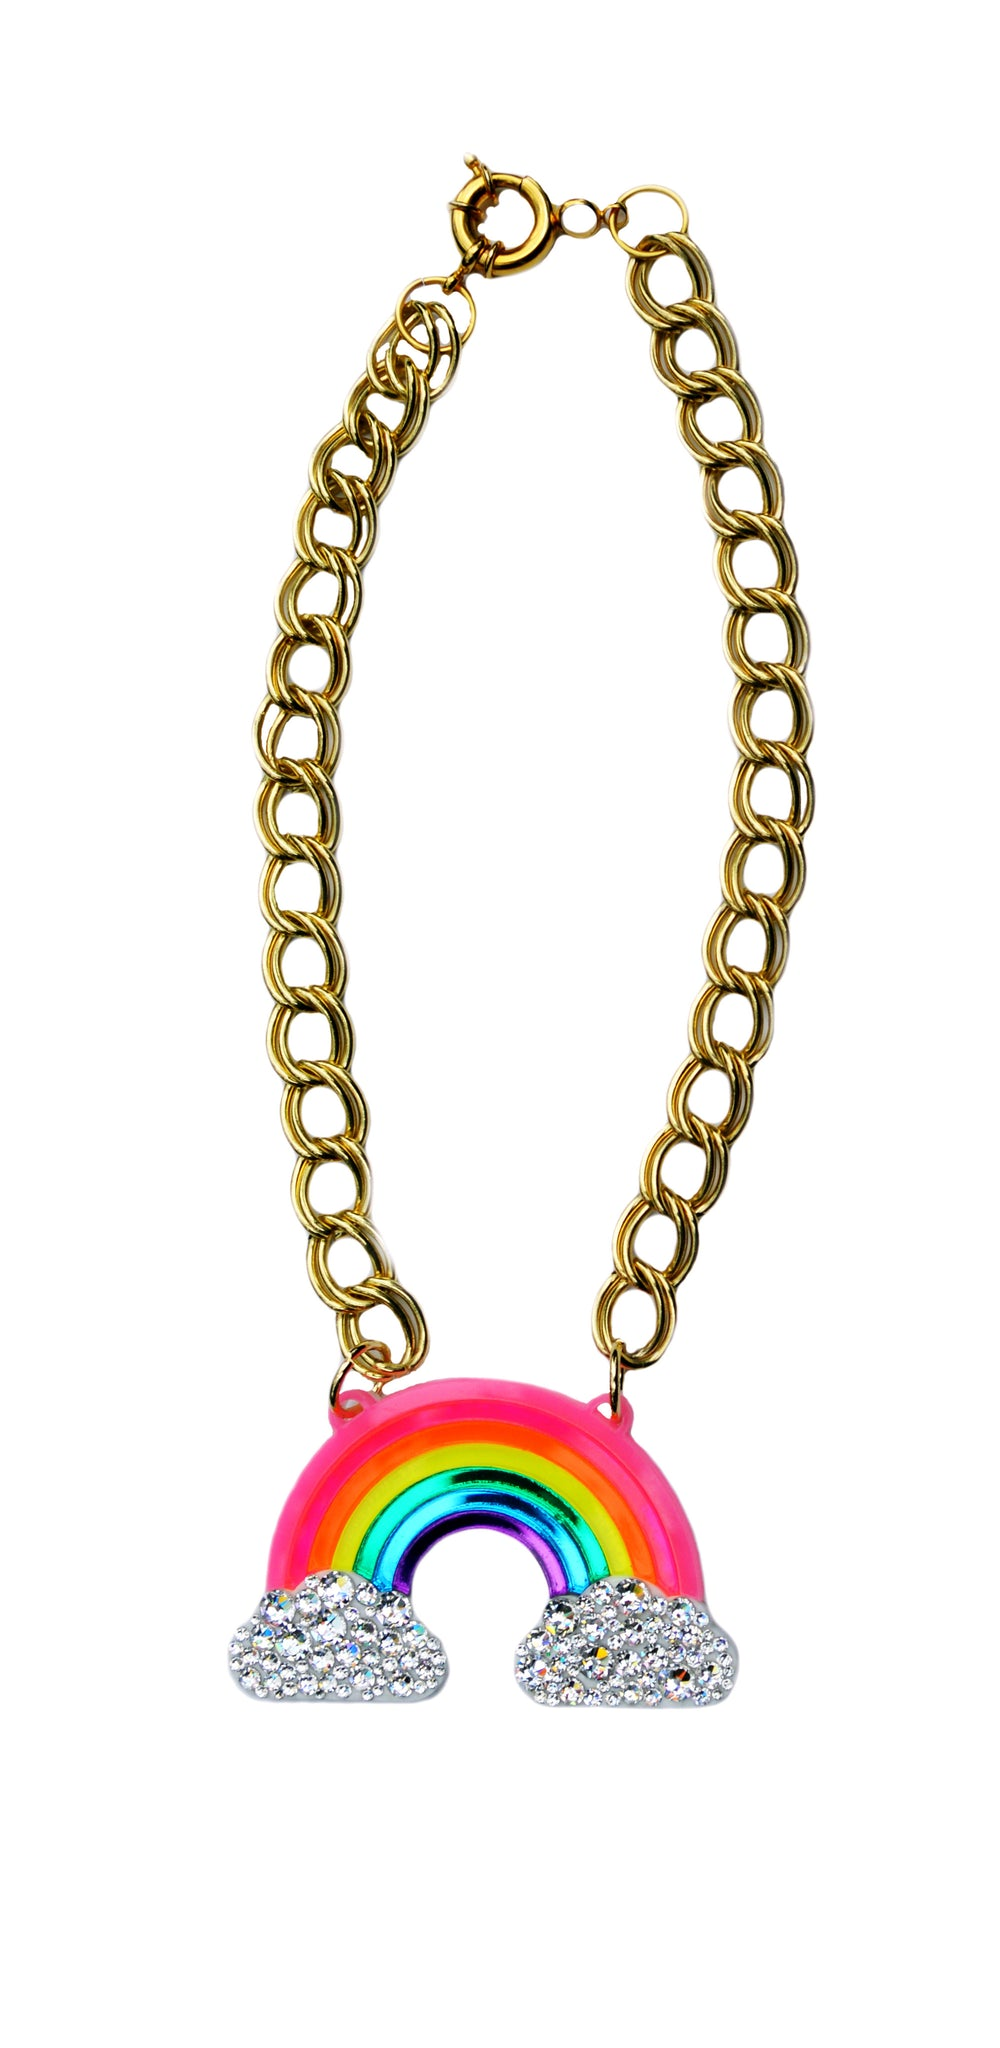 image cube lion coeur geo de necklace rainbow necklaces